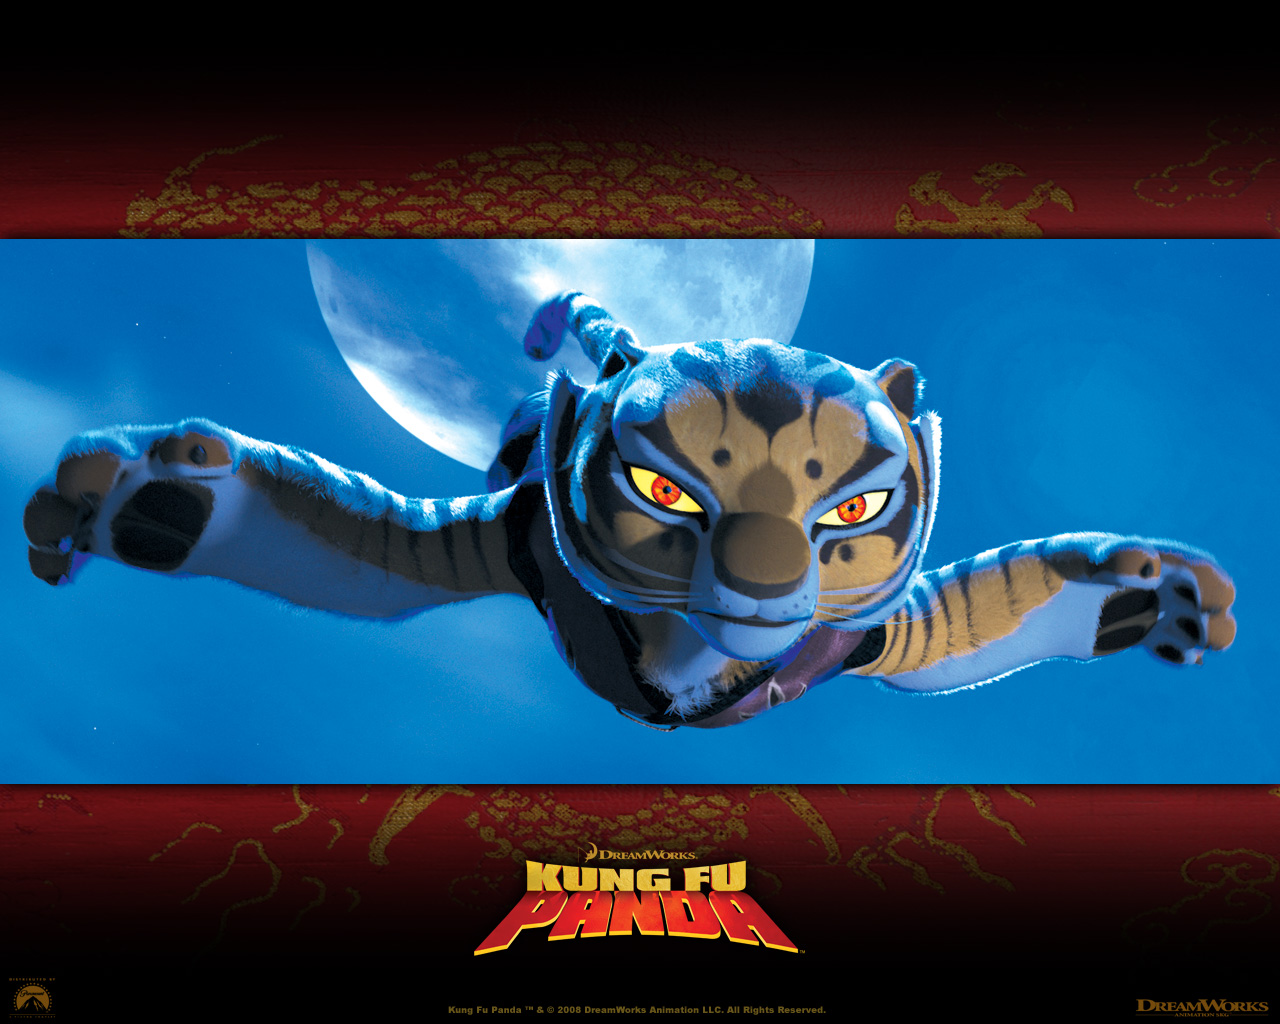 http://1.bp.blogspot.com/-DZ-S6uS7P60/Td0GA9x2neI/AAAAAAAAASI/c35BZPu1AI4/s1600/movie-wallpaper-kung-fu-panda-2008-tigress-2.jpg